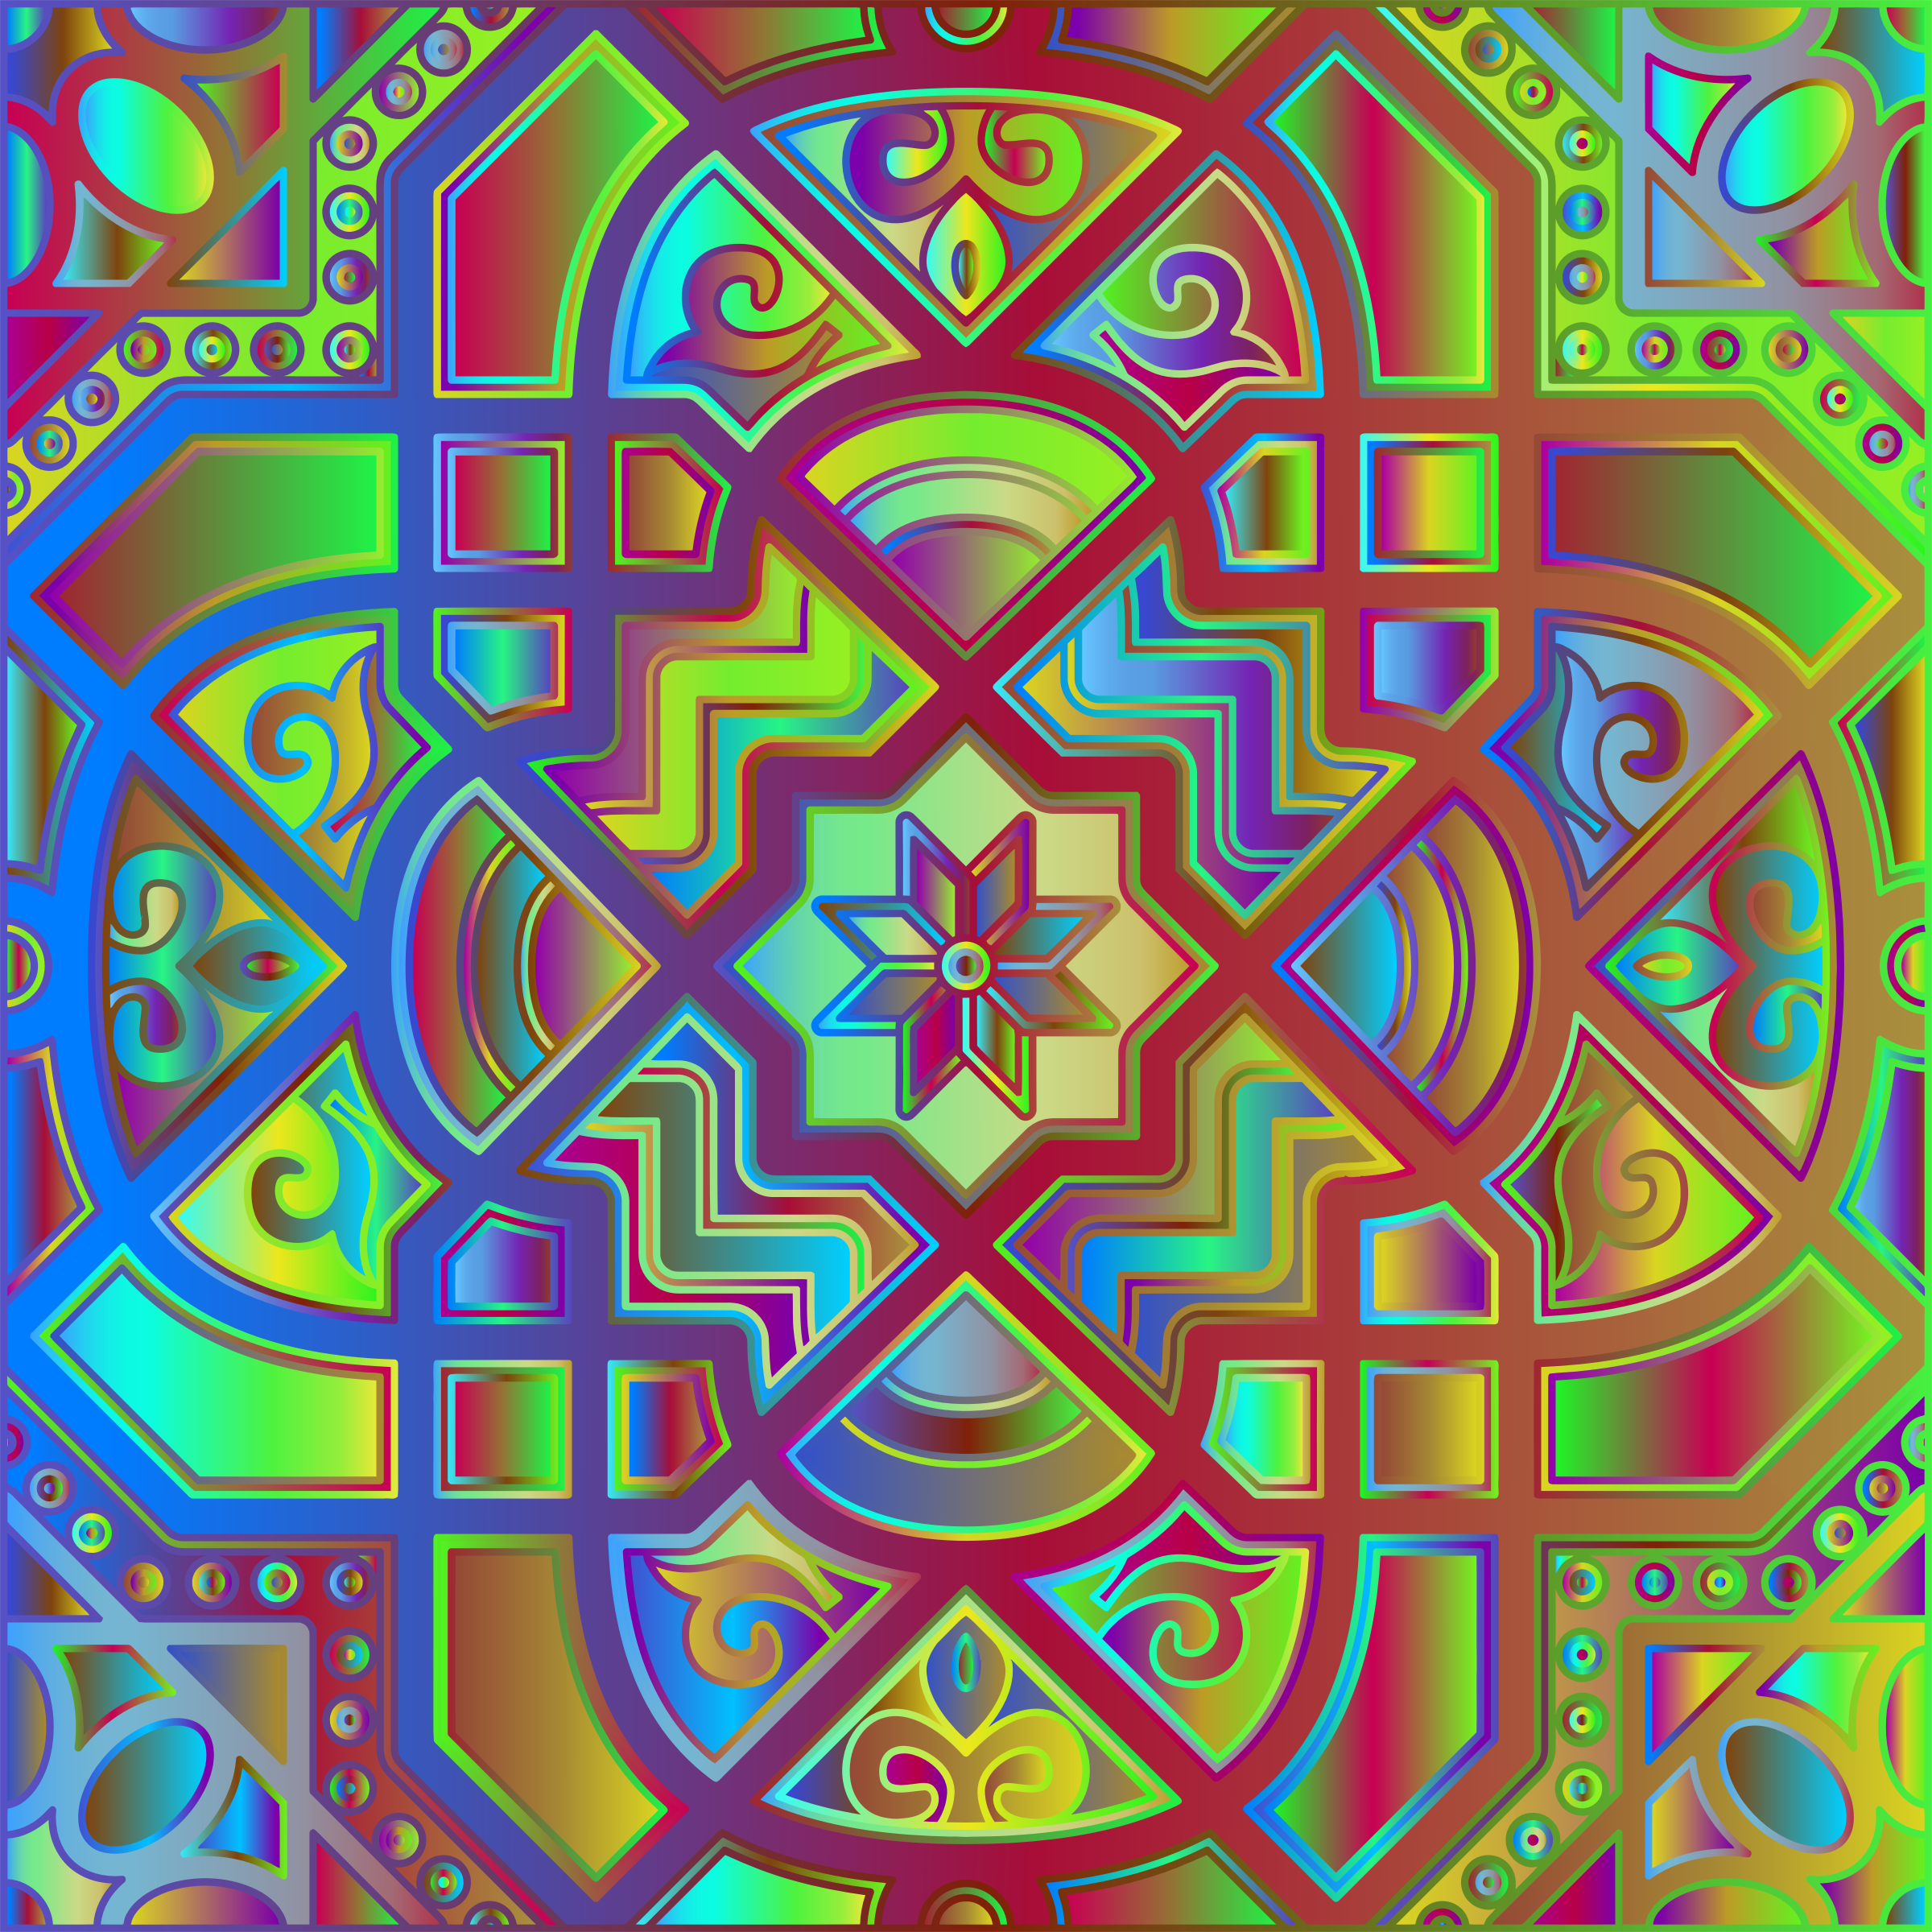 Chromatic Geometric Line Art 6 by GDJ